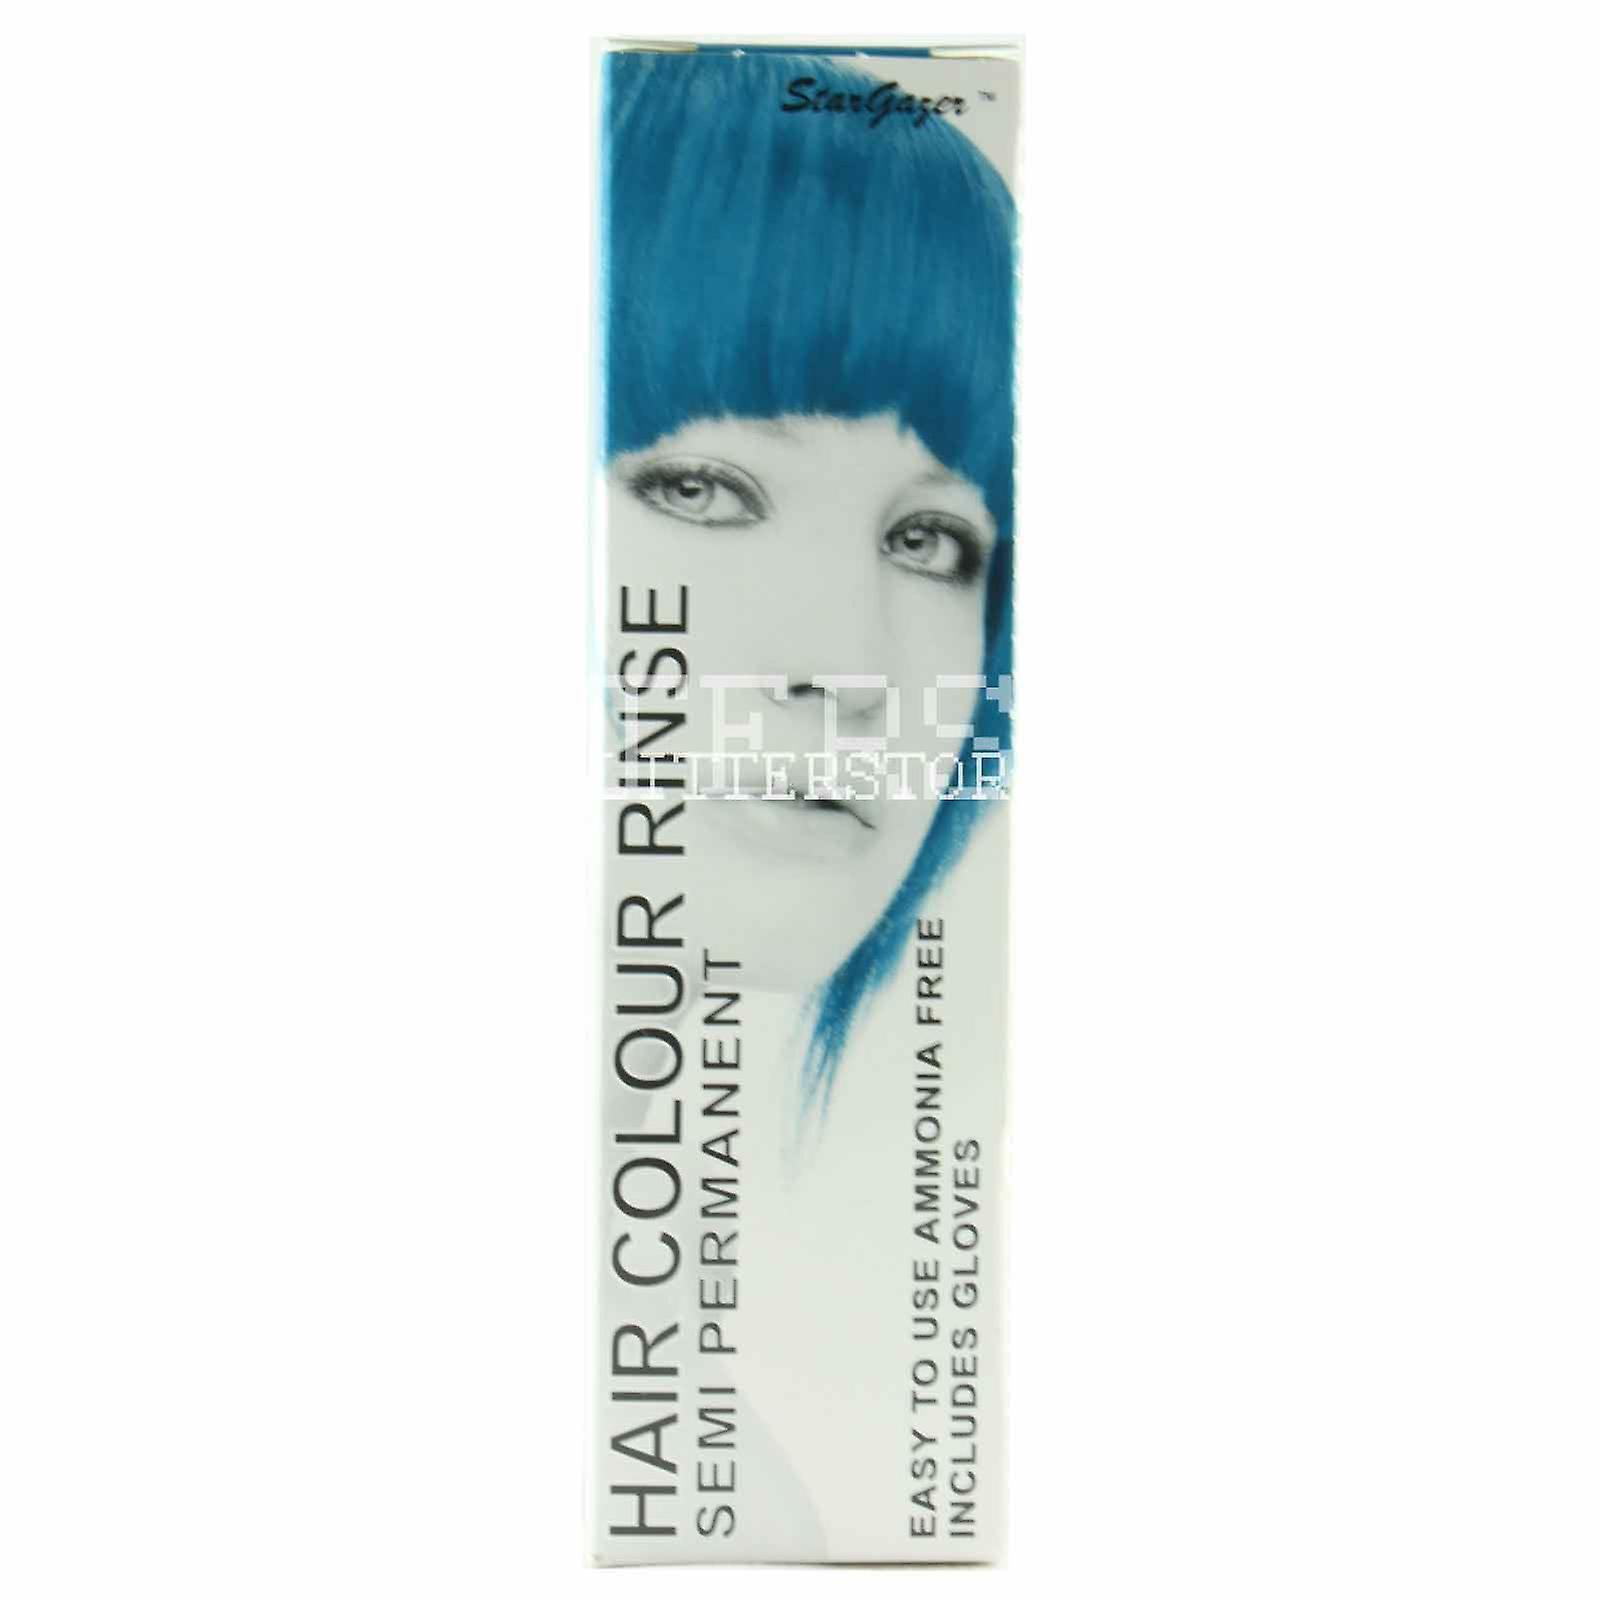 Stargazer Hair Dye - Soft Blue With Tint Brush